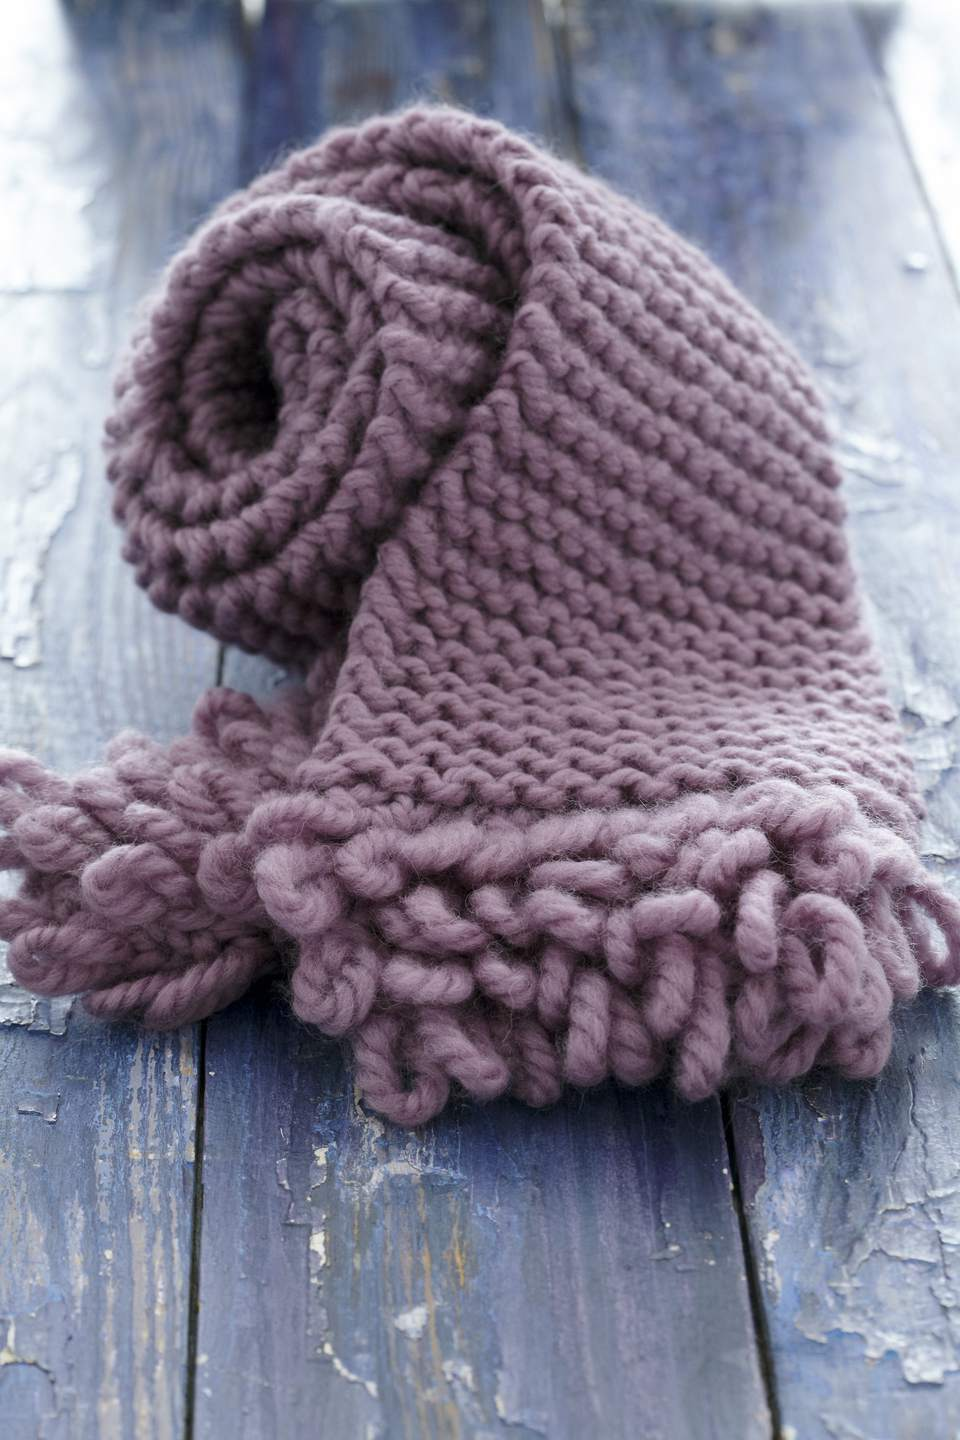 Make a Scarf With Some of the Bulky Yarn in Your Stash